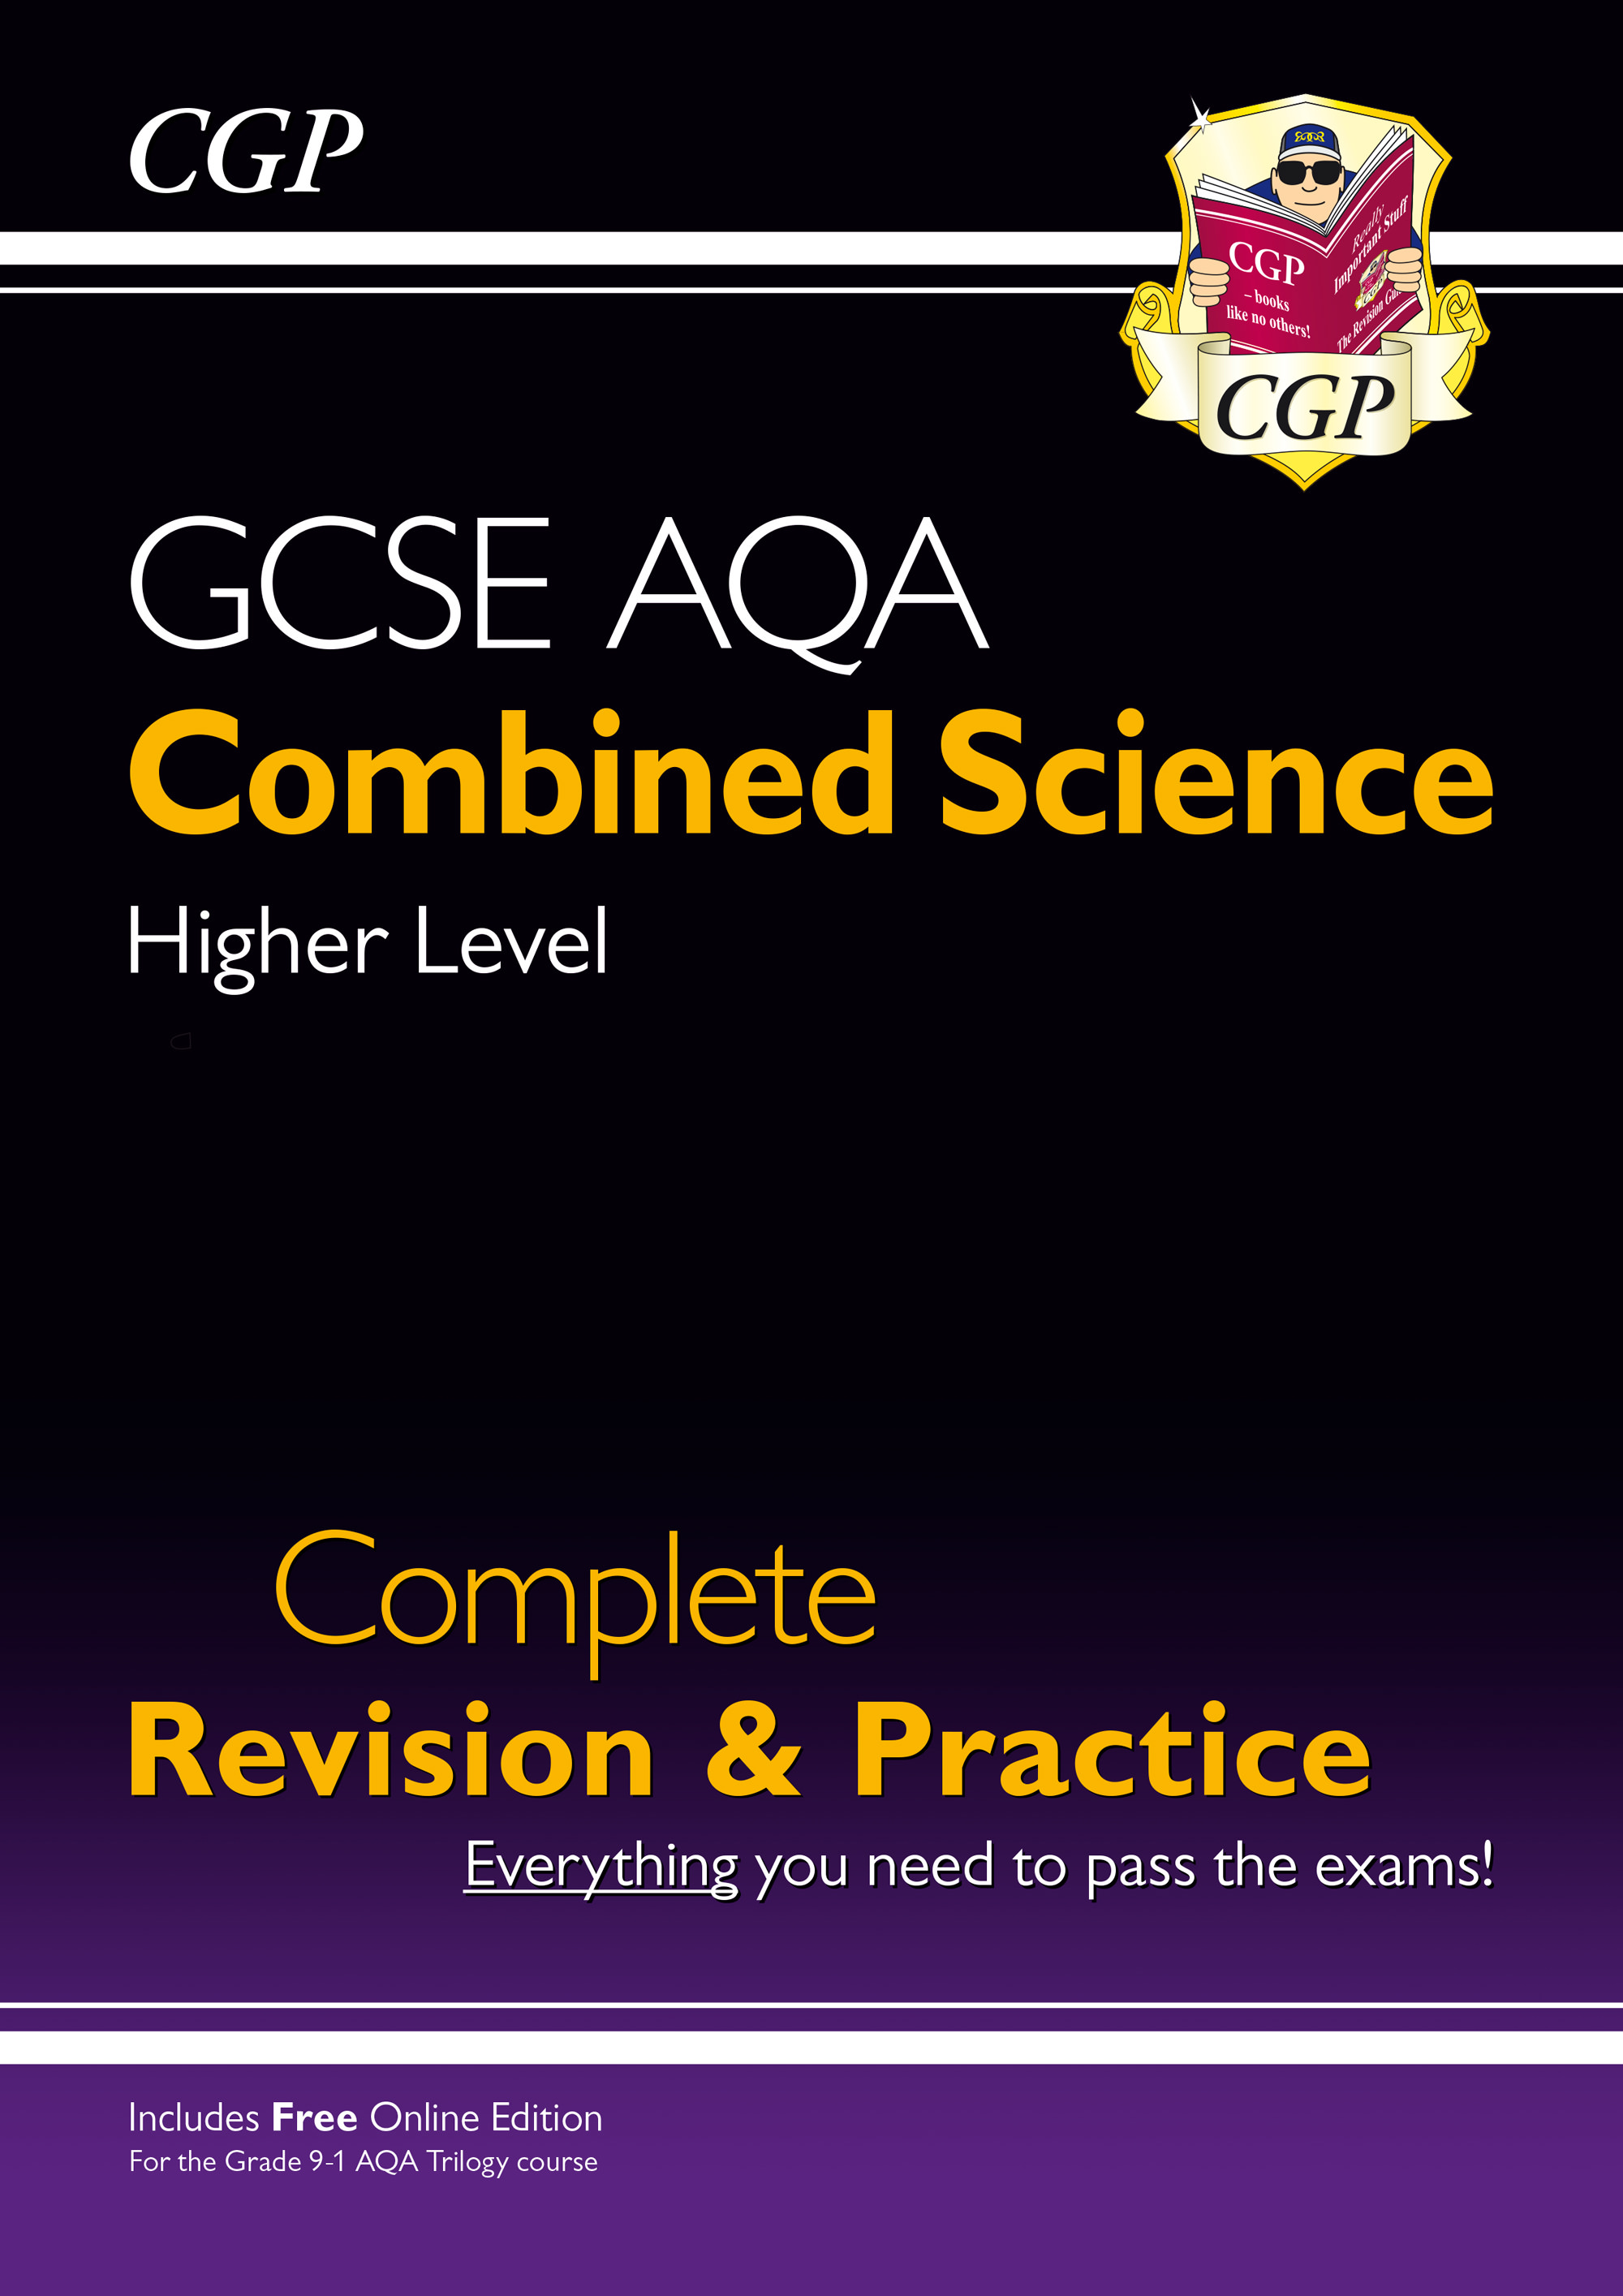 SCAHS41 - New 9-1 GCSE Combined Science: AQA Higher Complete Revision & Practice (with Online Editio